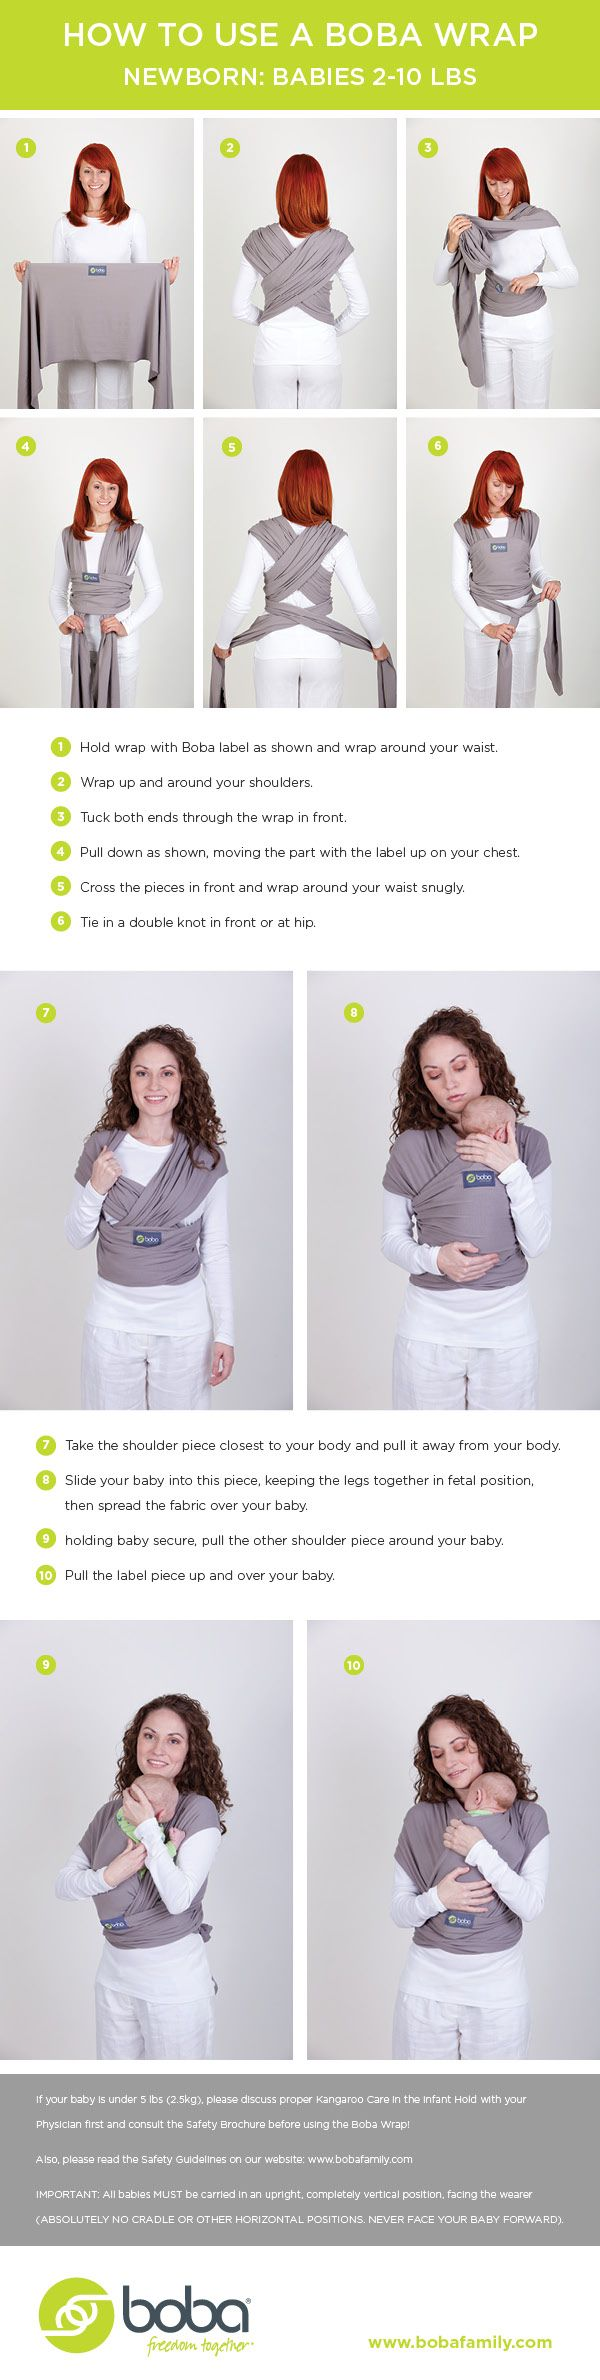 Best place after the womb! How to tie a stretchy baby wrap and carry your newborn.